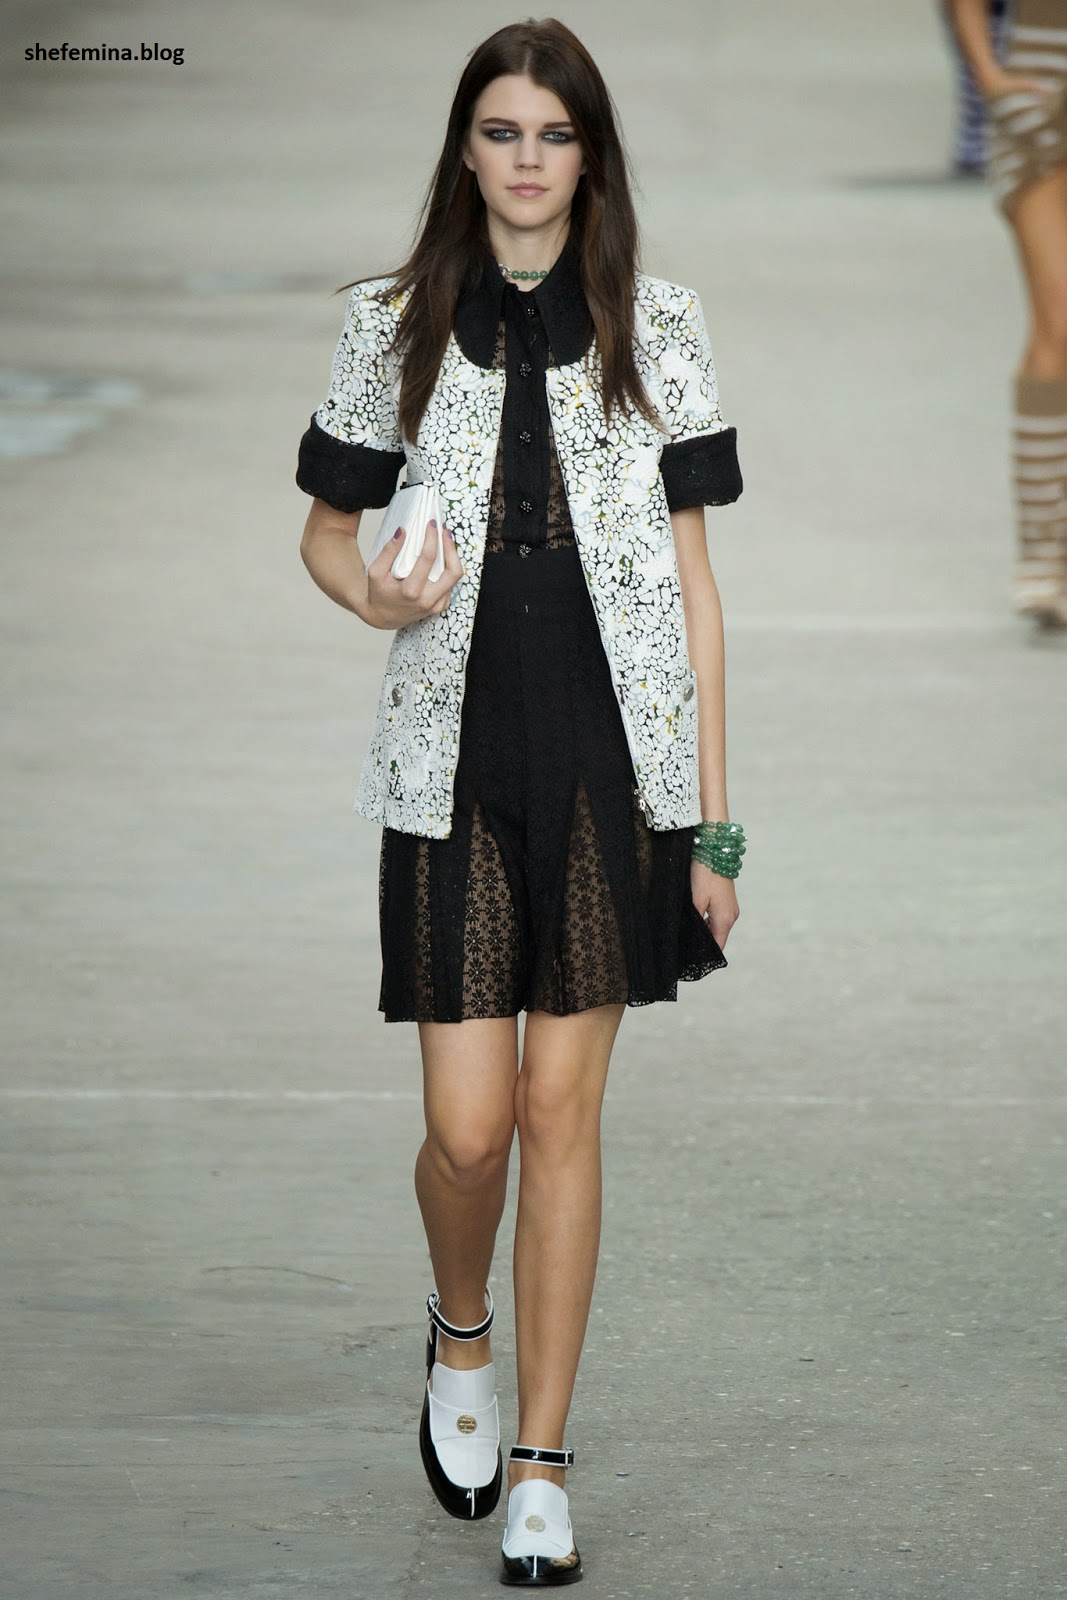 Chanel Spring 2015 dresses HD wallpaper 23